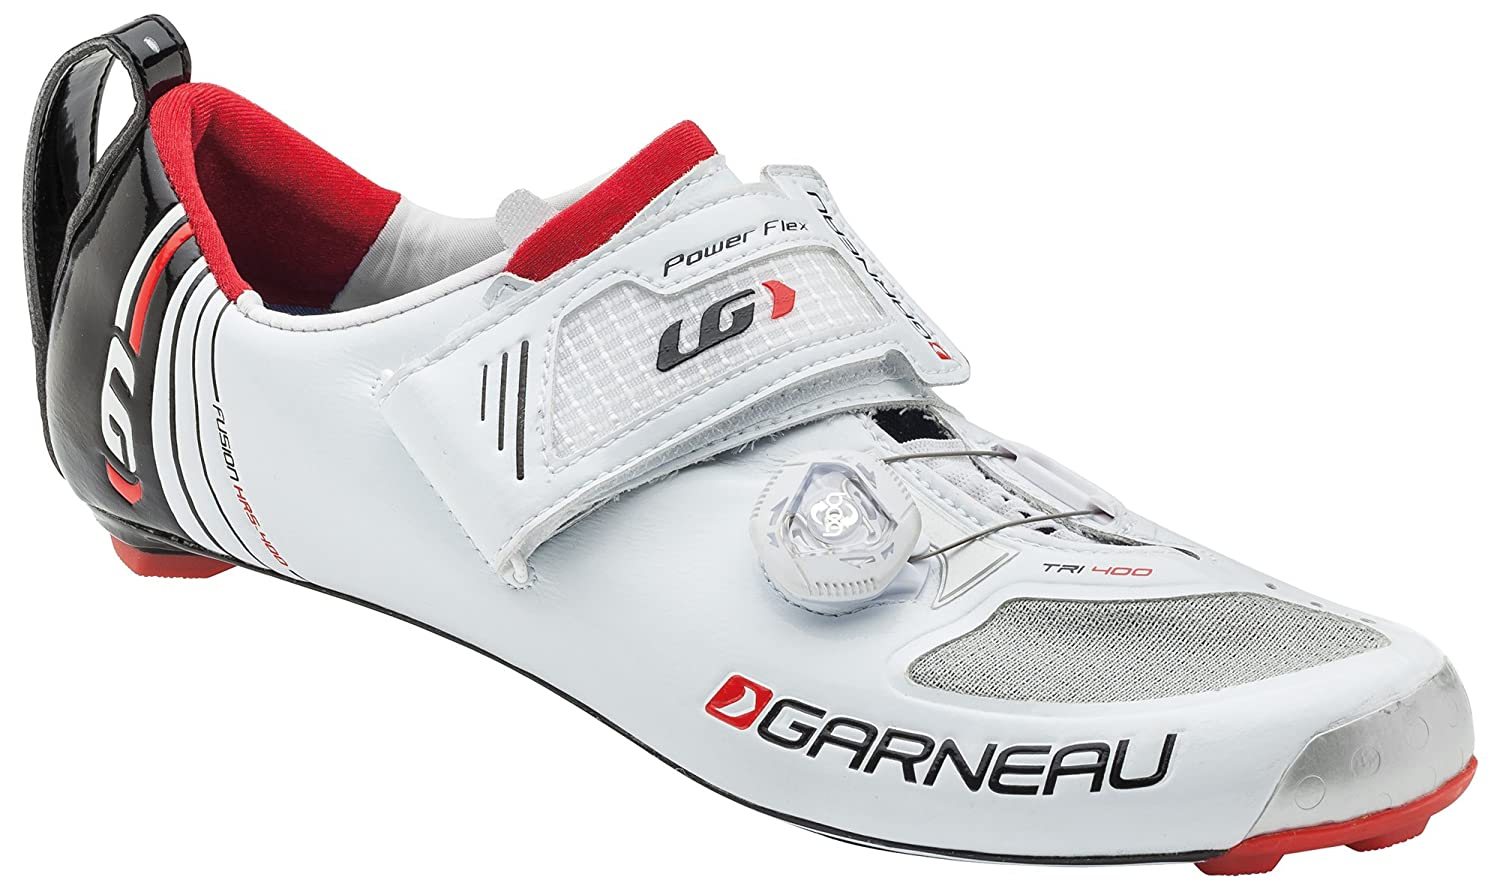 Louis Garneau Tri-400 Triathlon Bike Shoes B00O83RPQC 44.5